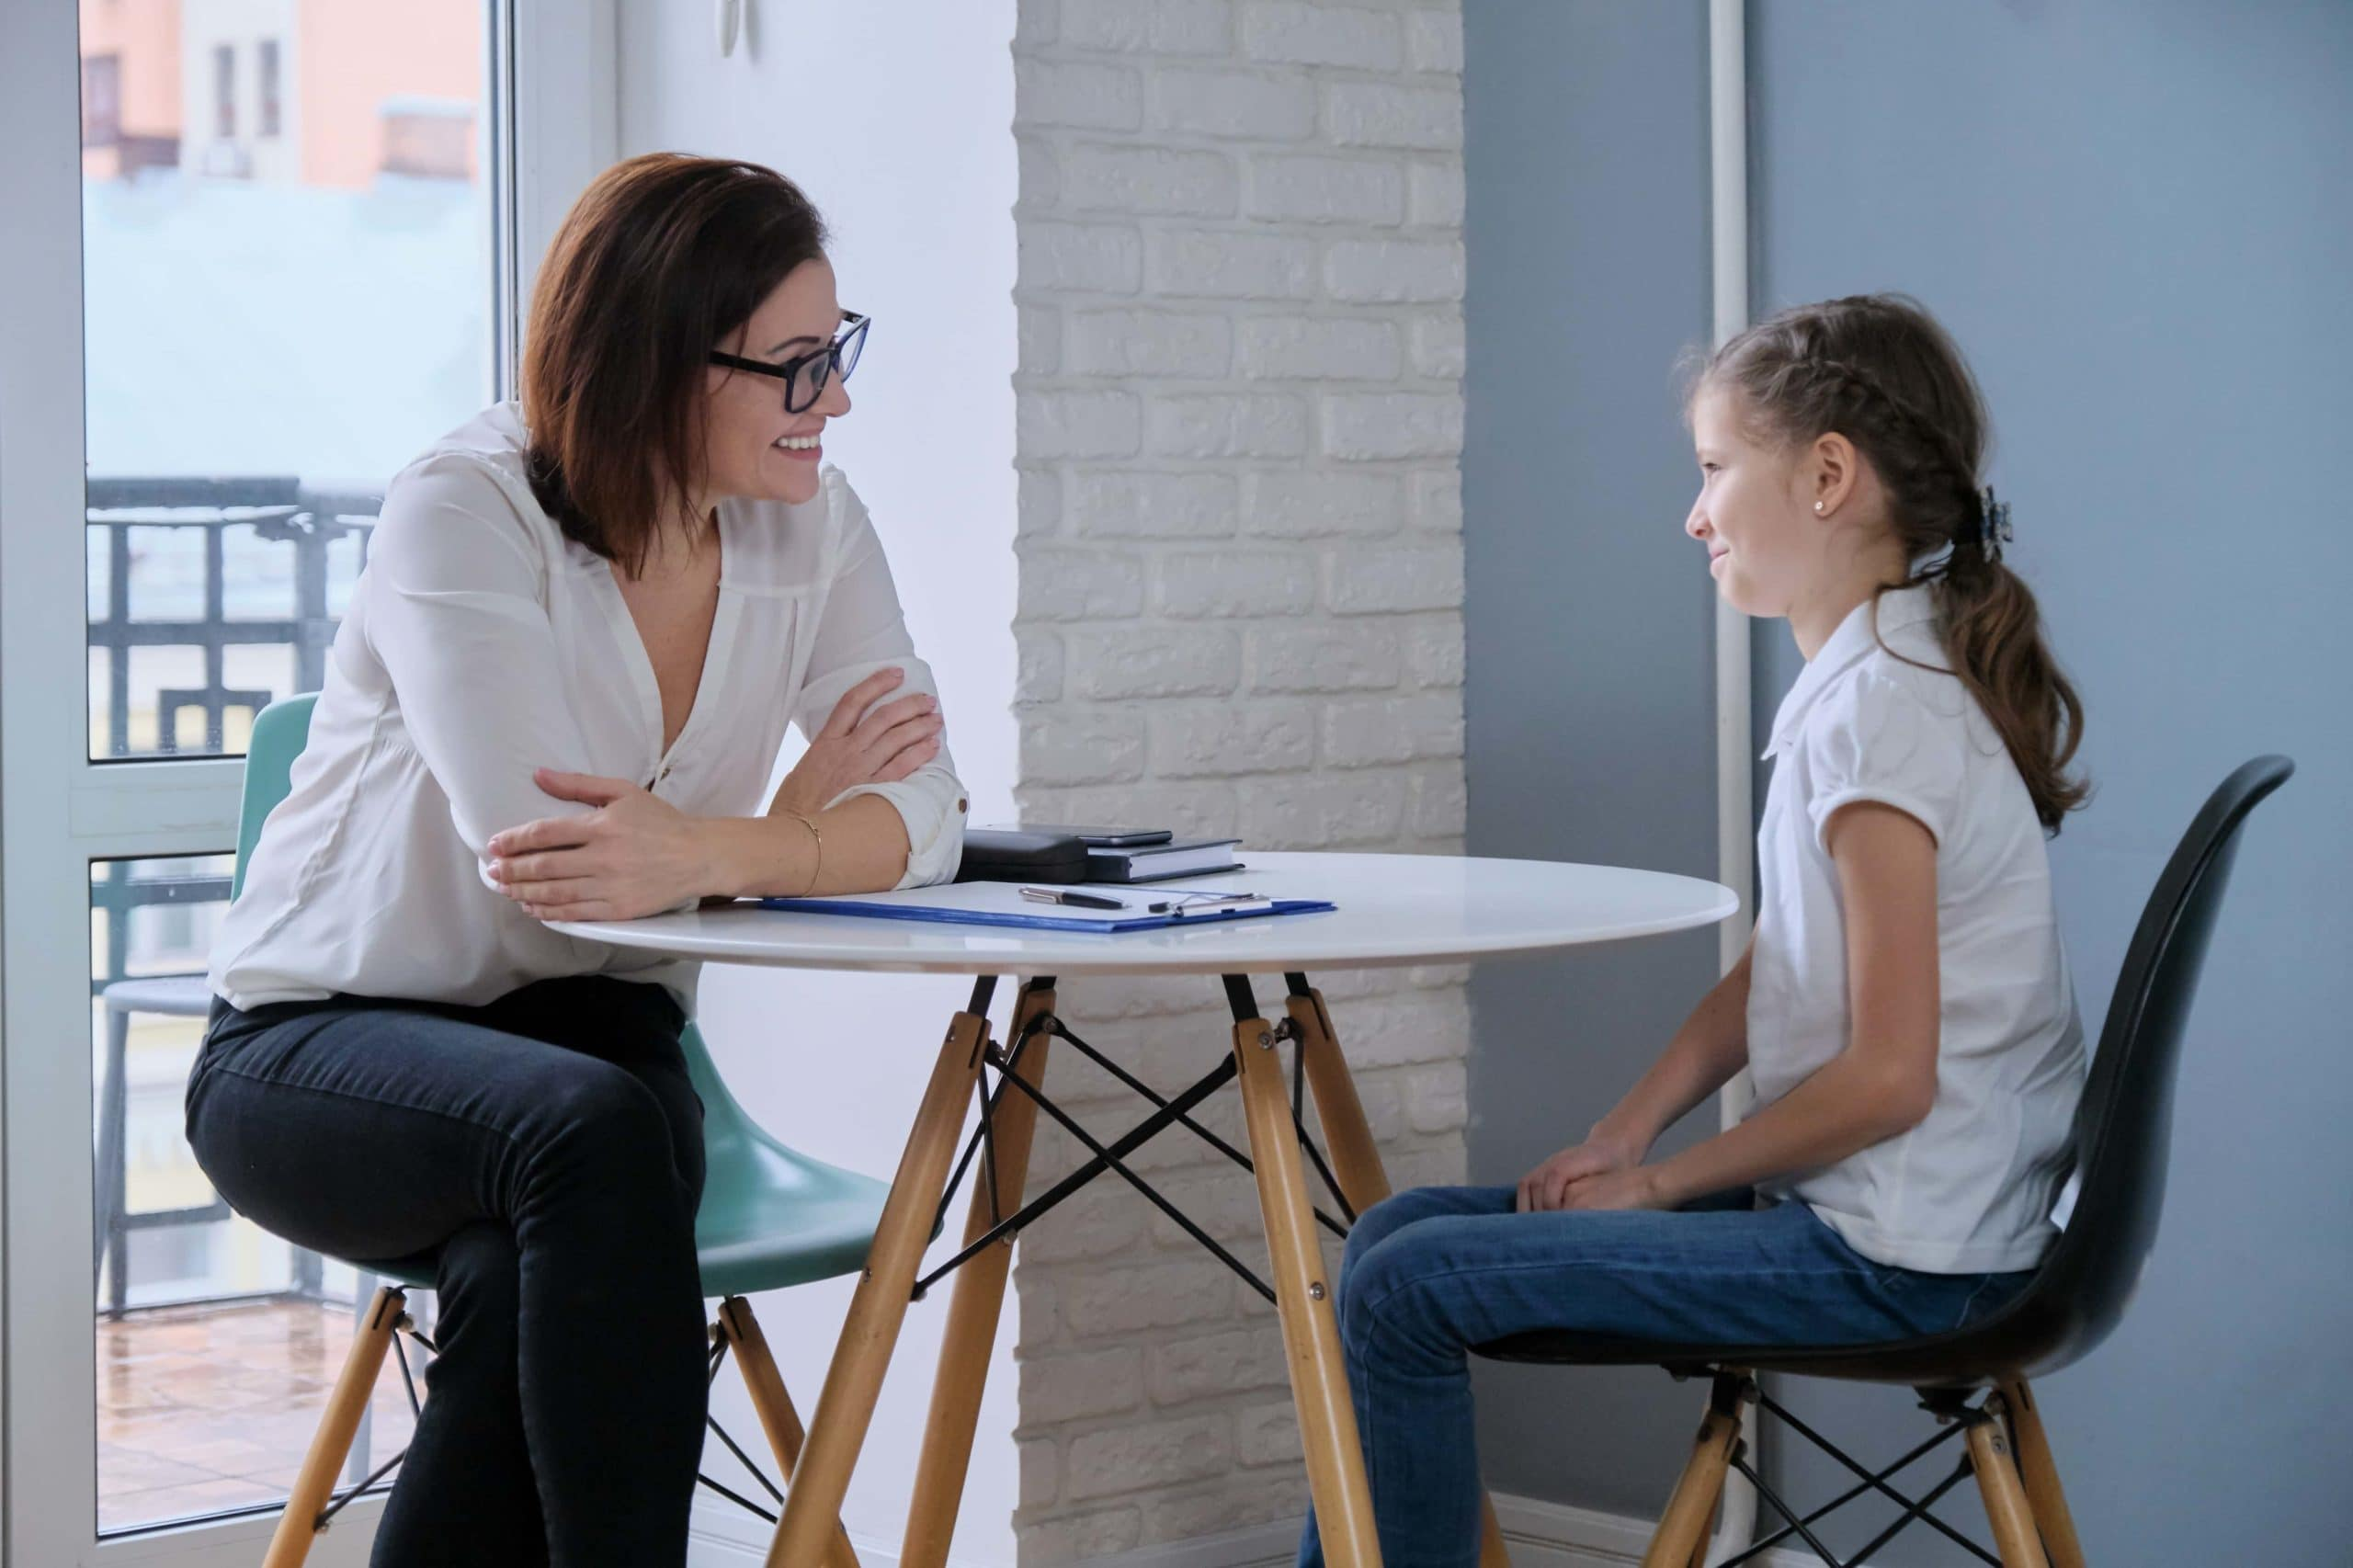 Communication session of school psychologist and girl 9, 10 years. Child tells psychotherapist his experiences, mental health of children